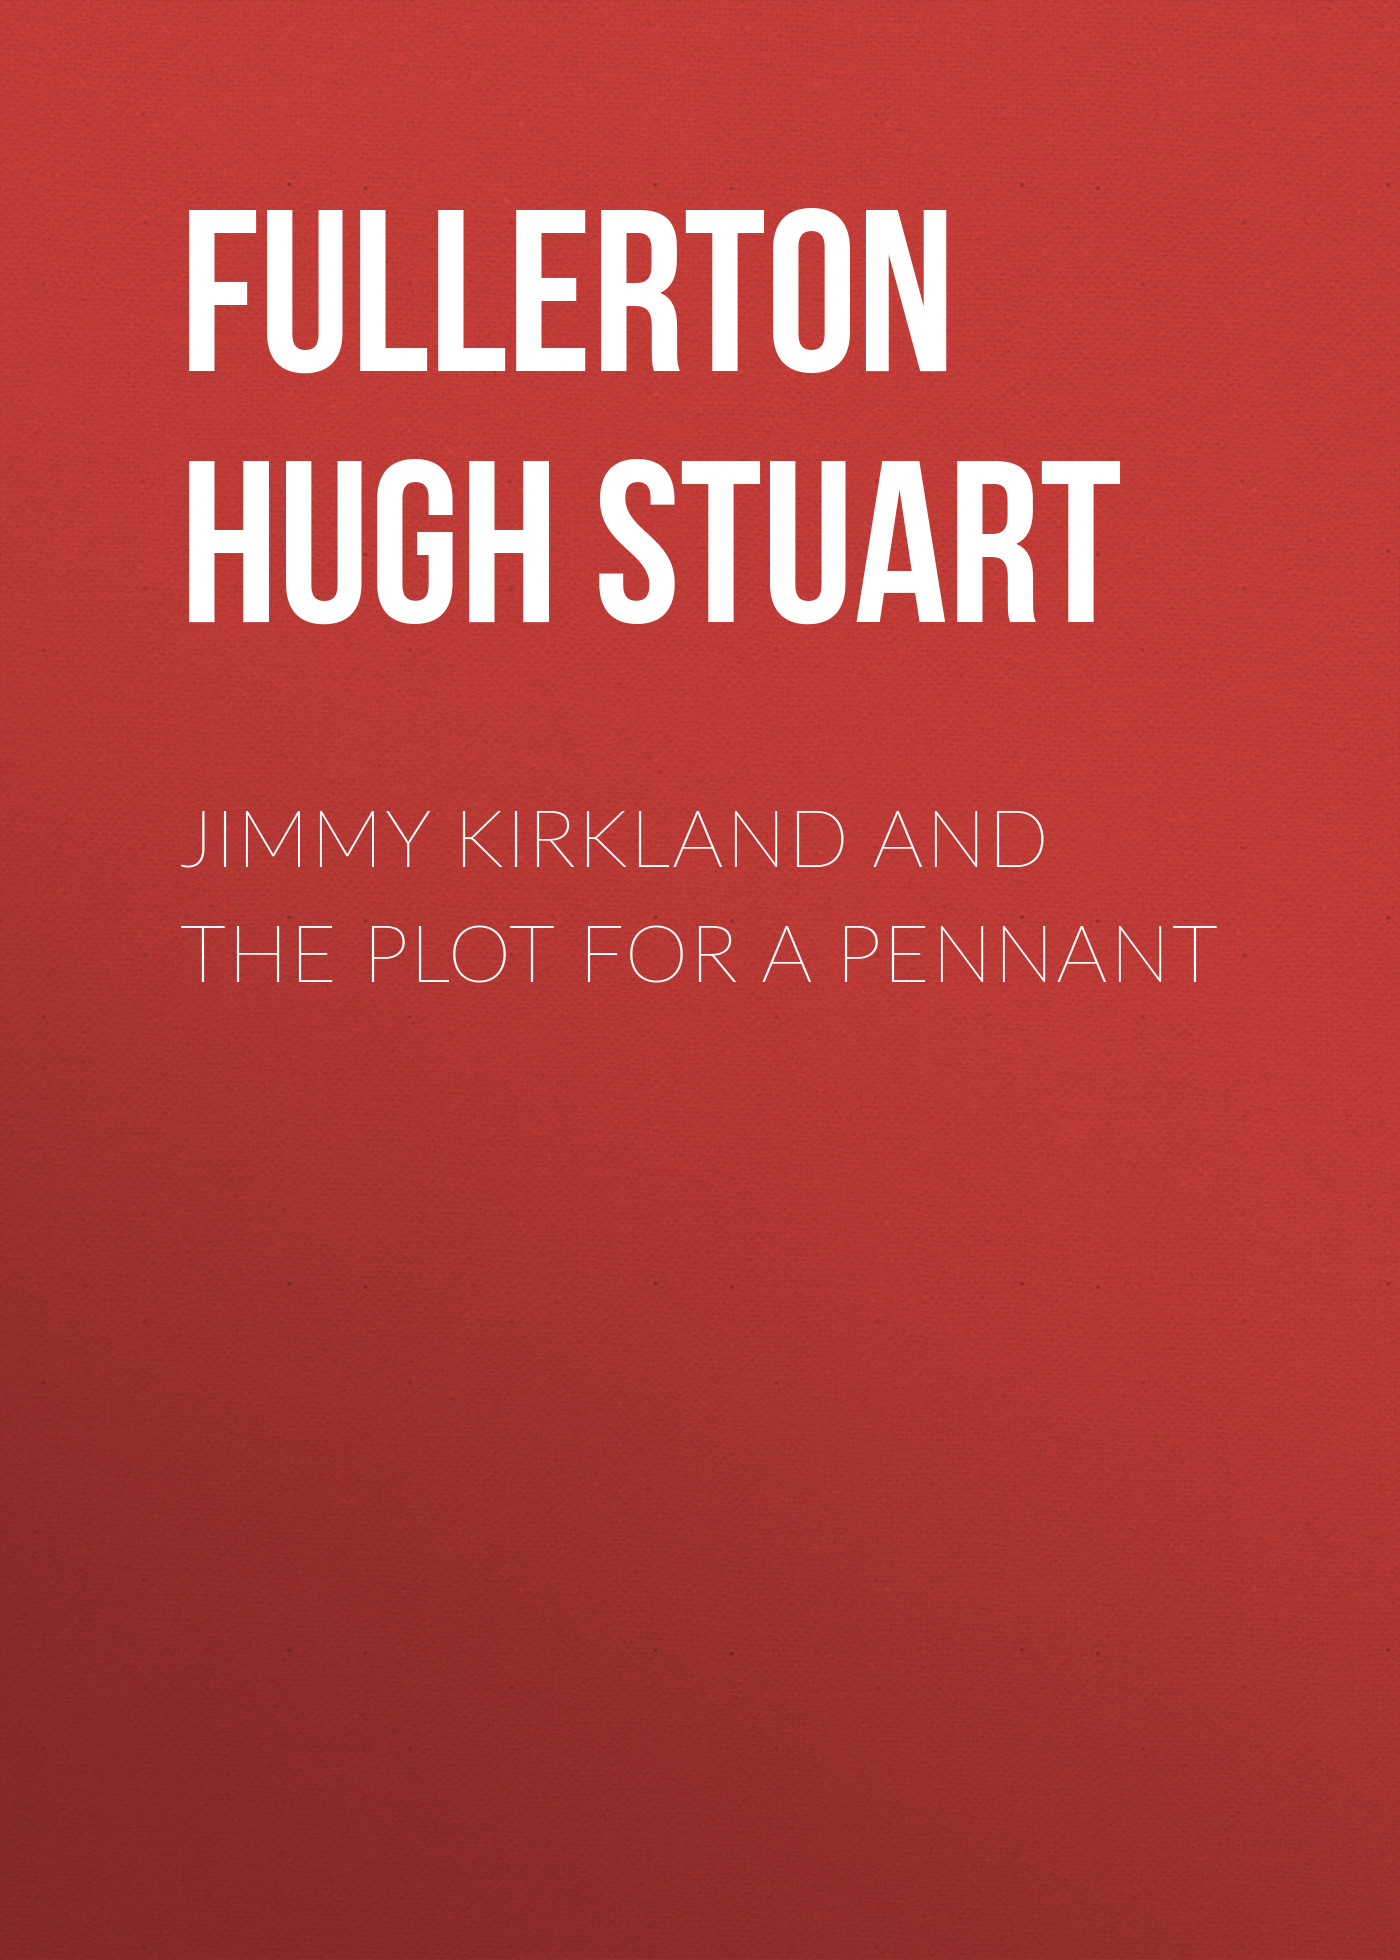 Fullerton Hugh Stuart Jimmy Kirkland and the Plot for a Pennant stuart macbride the 45% hangover [a logan and steel novella]